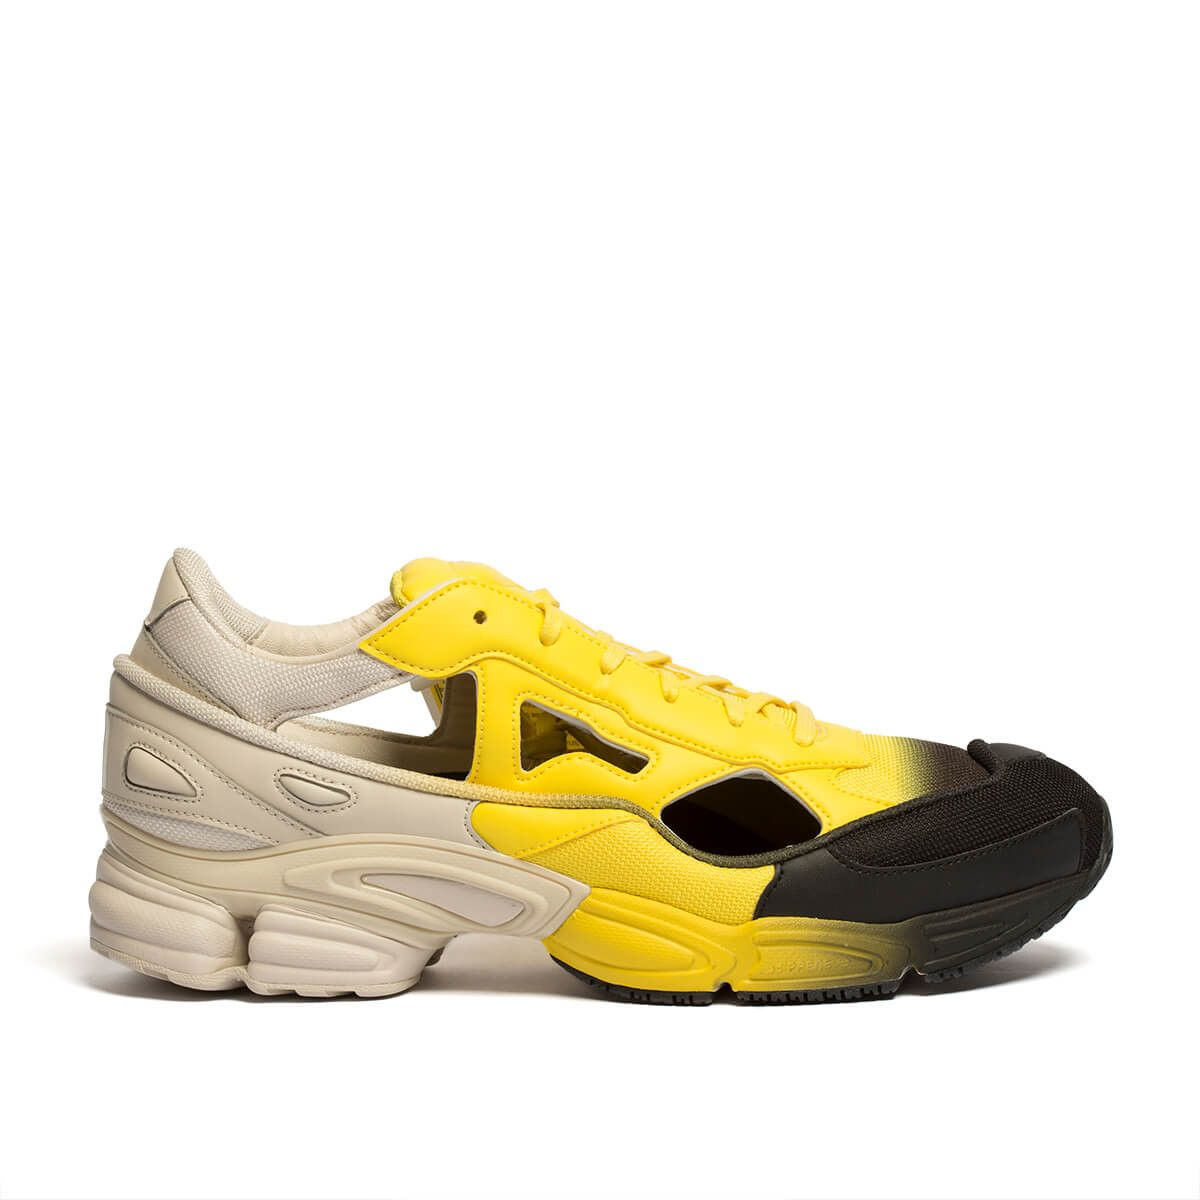 0eade7a0c Replicant Ozweego sneakers from the S/S2019 Raf Simons x Adidas collection  in multicolor